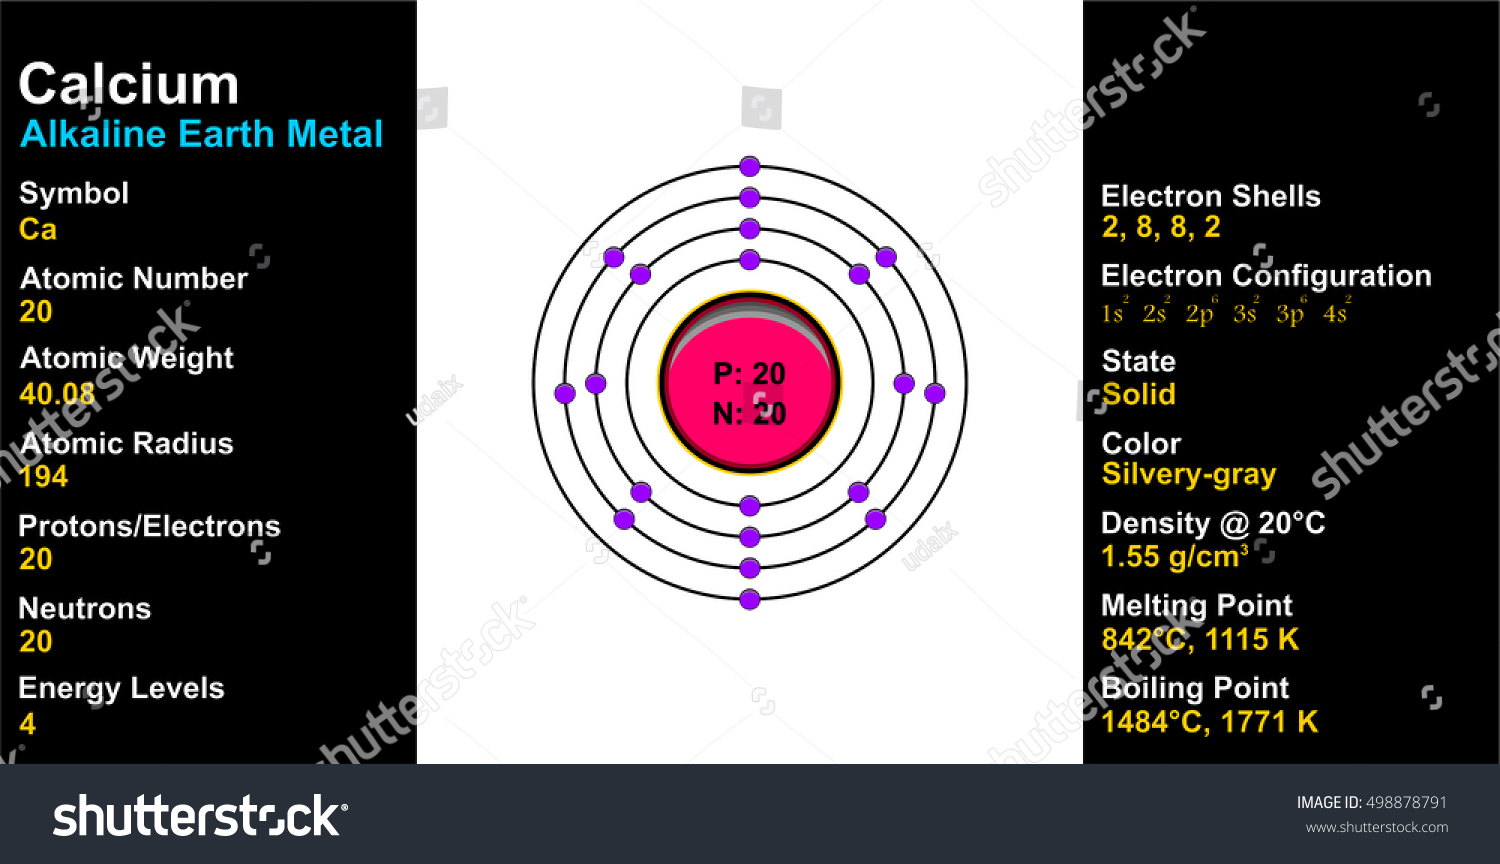 number for nickel shell diagram domestic wiring symbols uk vector calcium atom stock 498878791 shutterstock